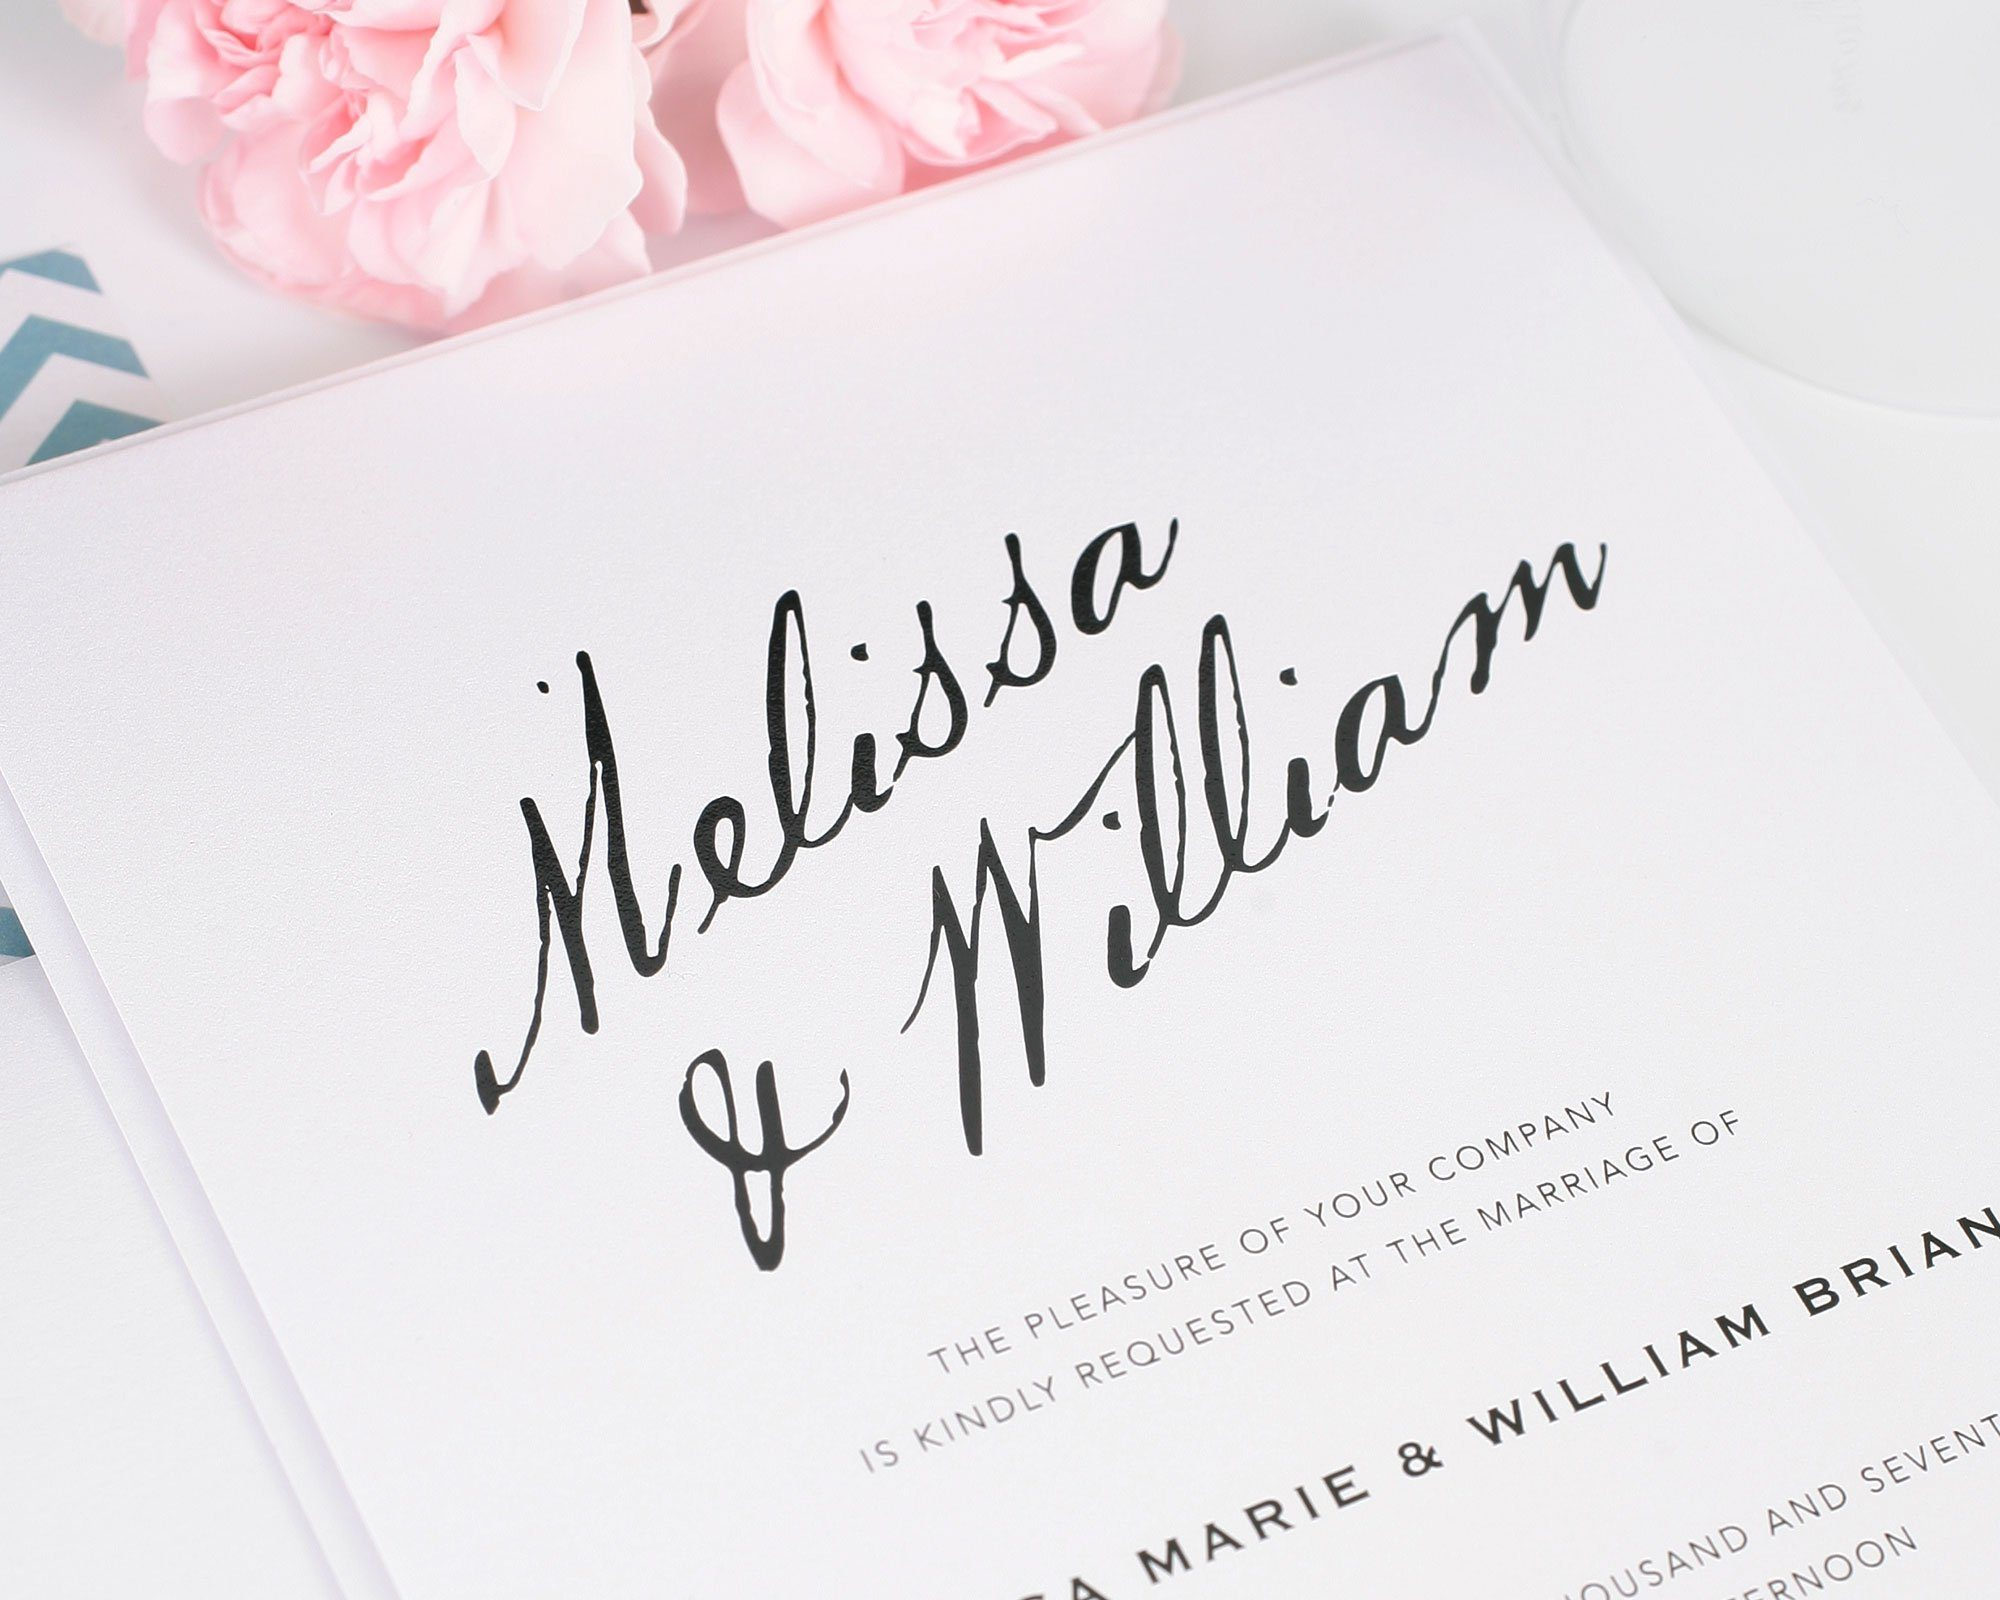 Wedding invitations with modern calligraphy